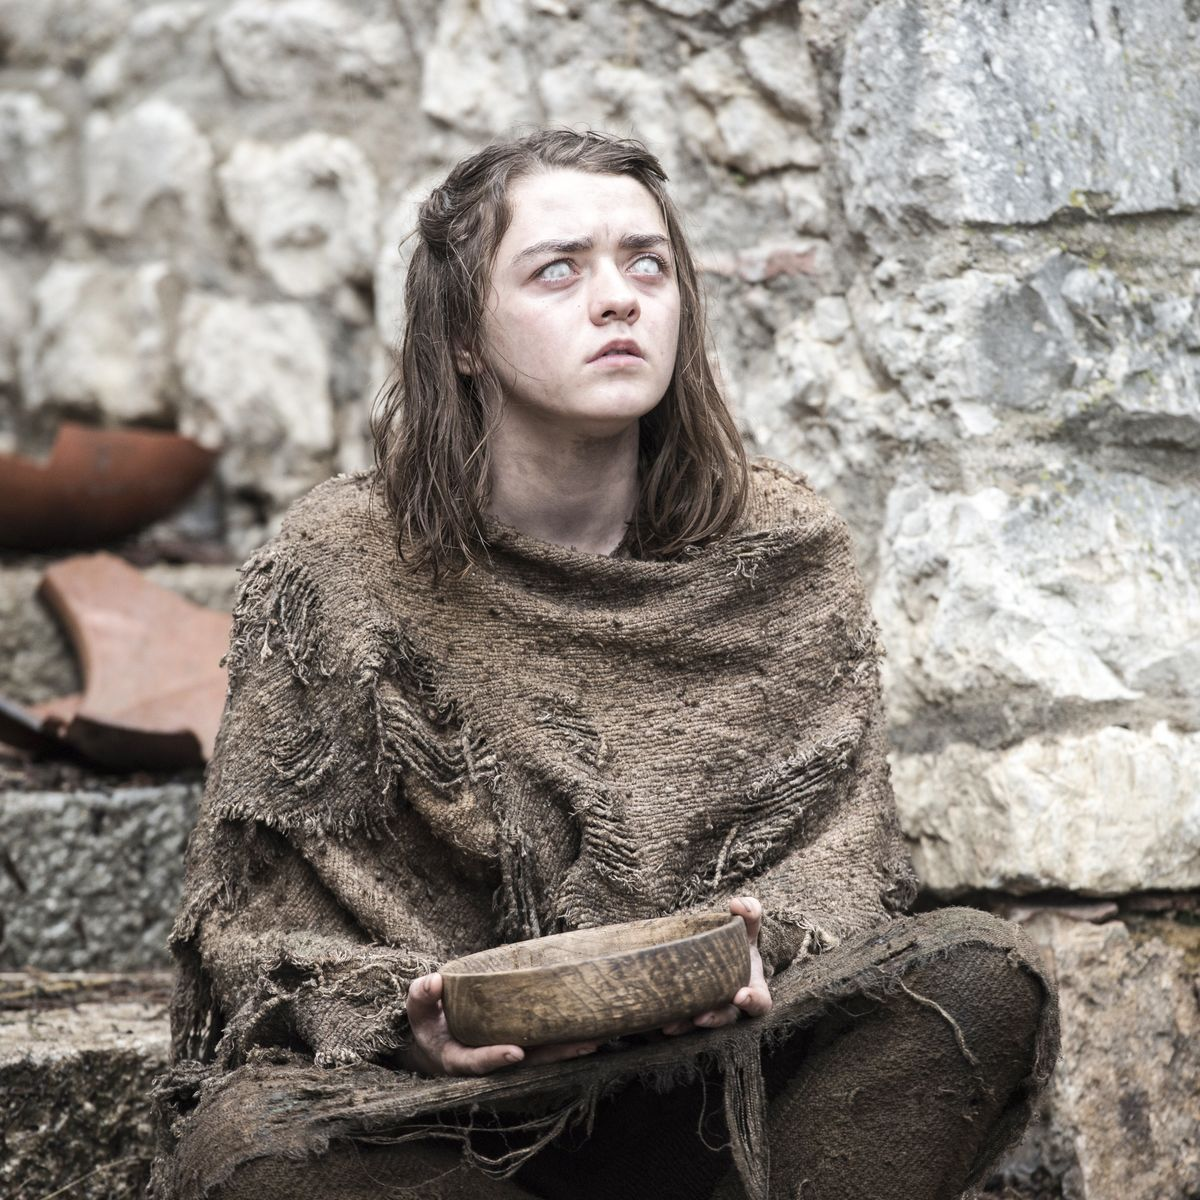 Game-of-Thrones-S6-19_0.jpg